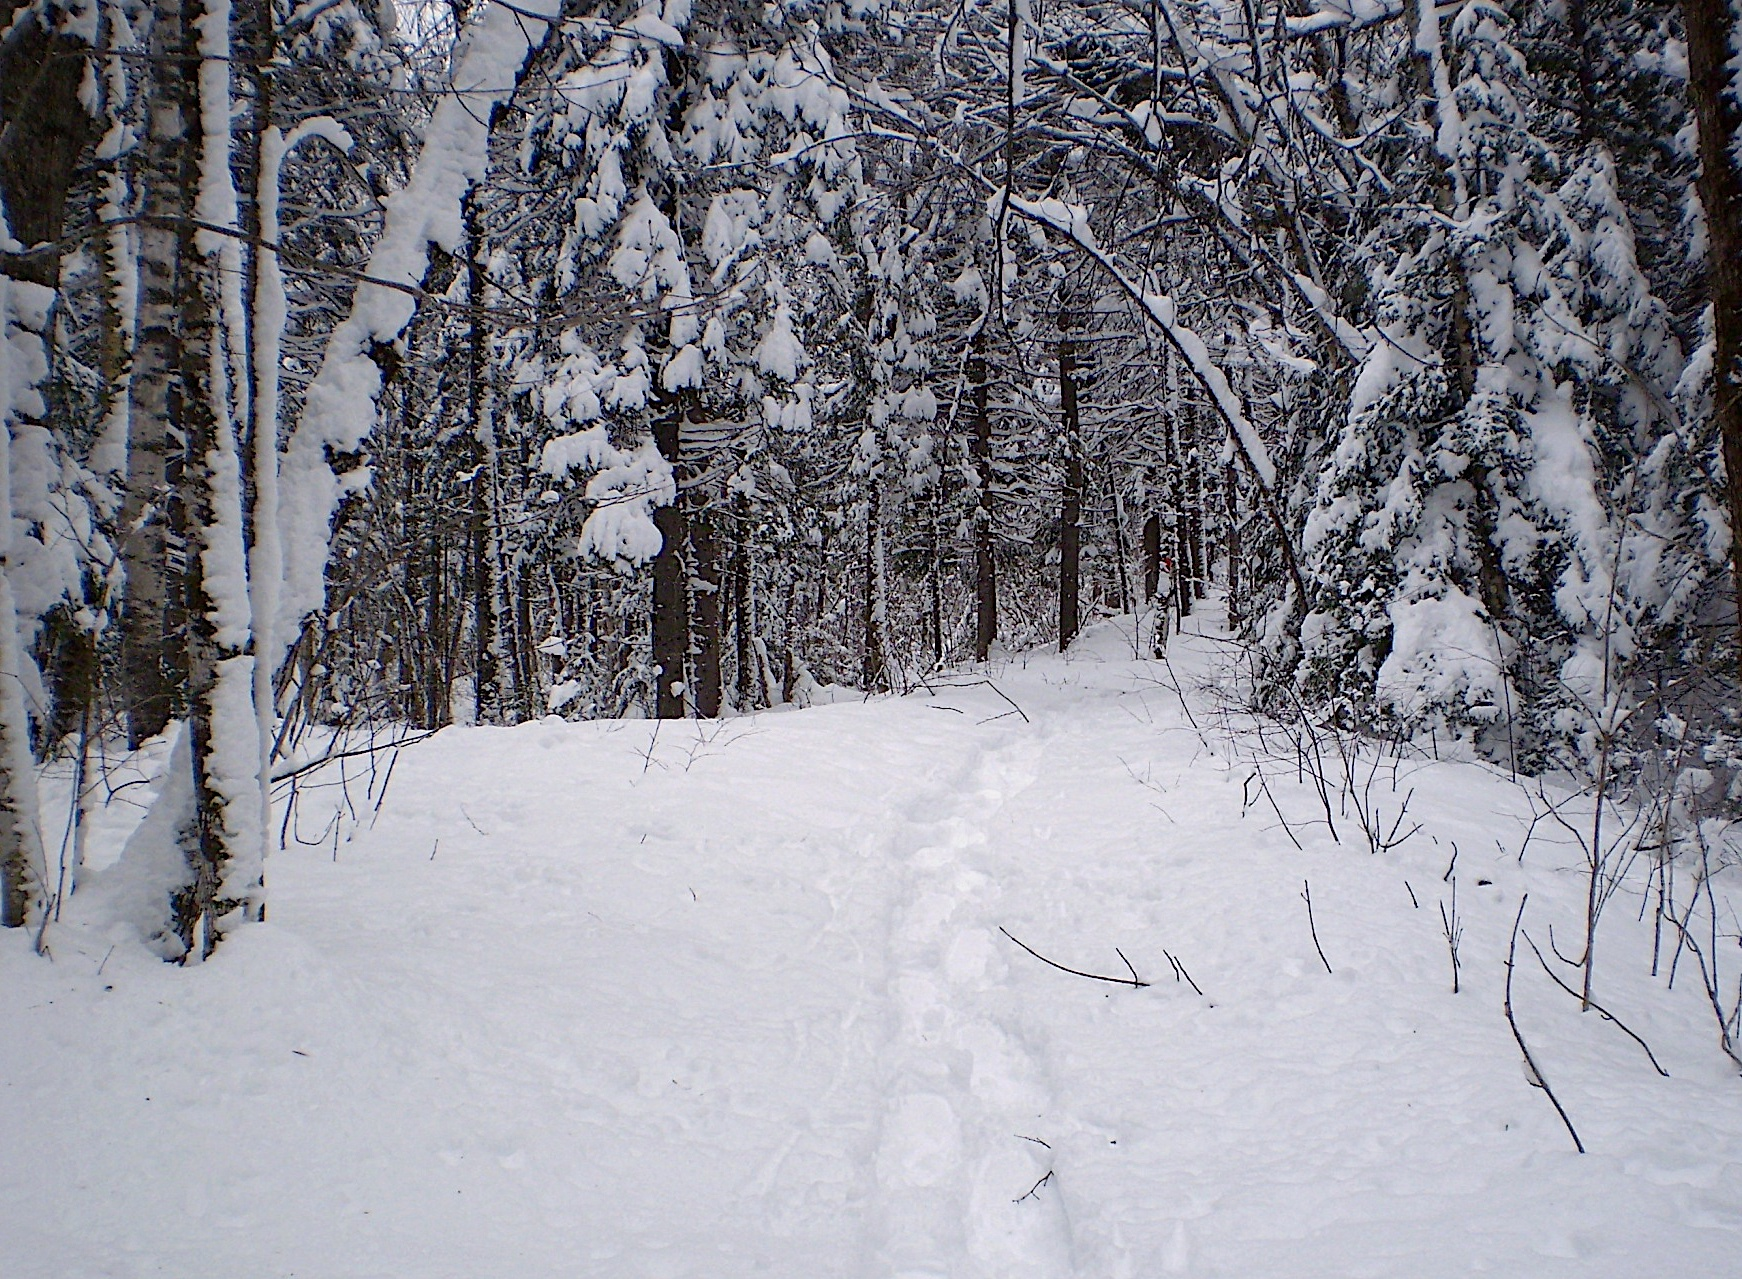 Snowshoe tracks through a snow-covered lane flanked by bare deciduous trees topped with snow